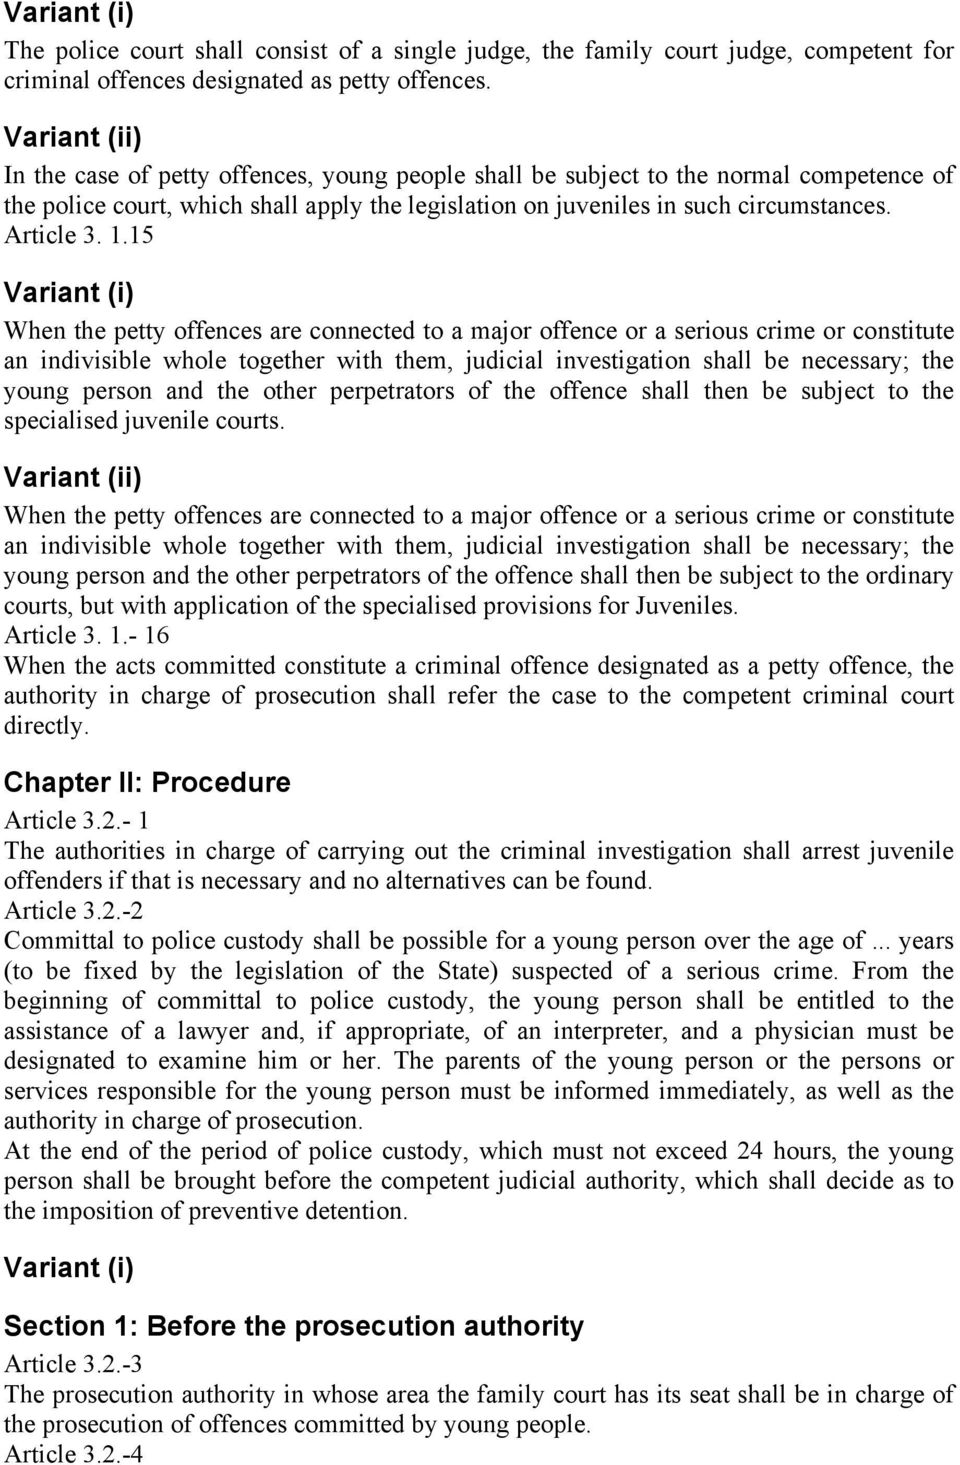 1.15 Variant (i) When the petty offences are connected to a major offence or a serious crime or constitute an indivisible whole together with them, judicial investigation shall be necessary; the